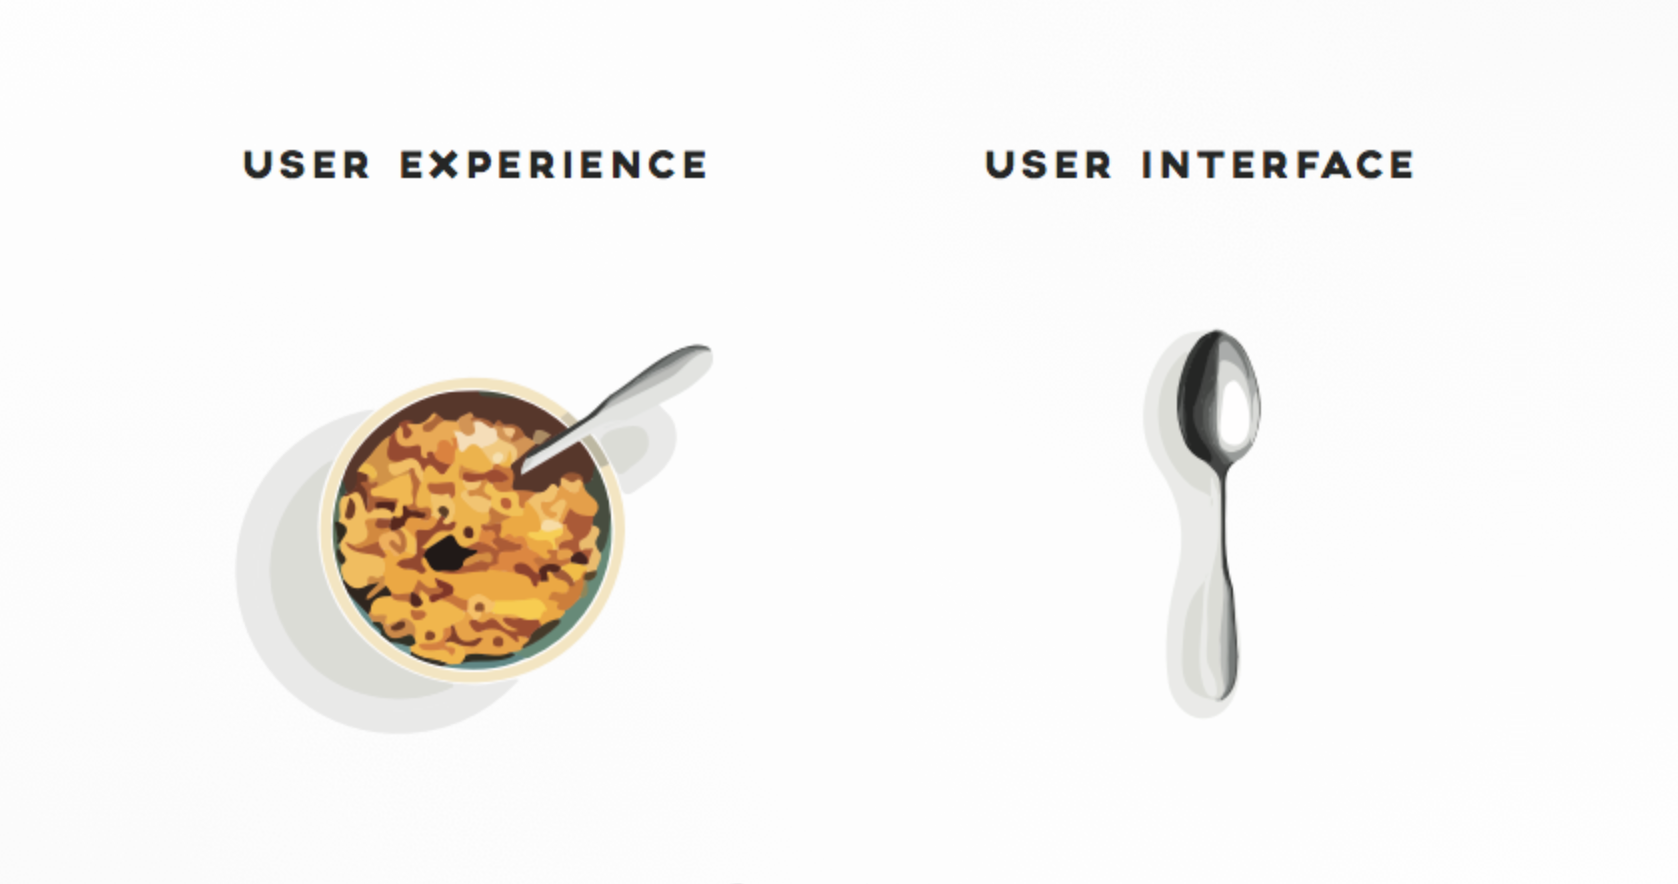 UX is not UI, the difference between UI and UX